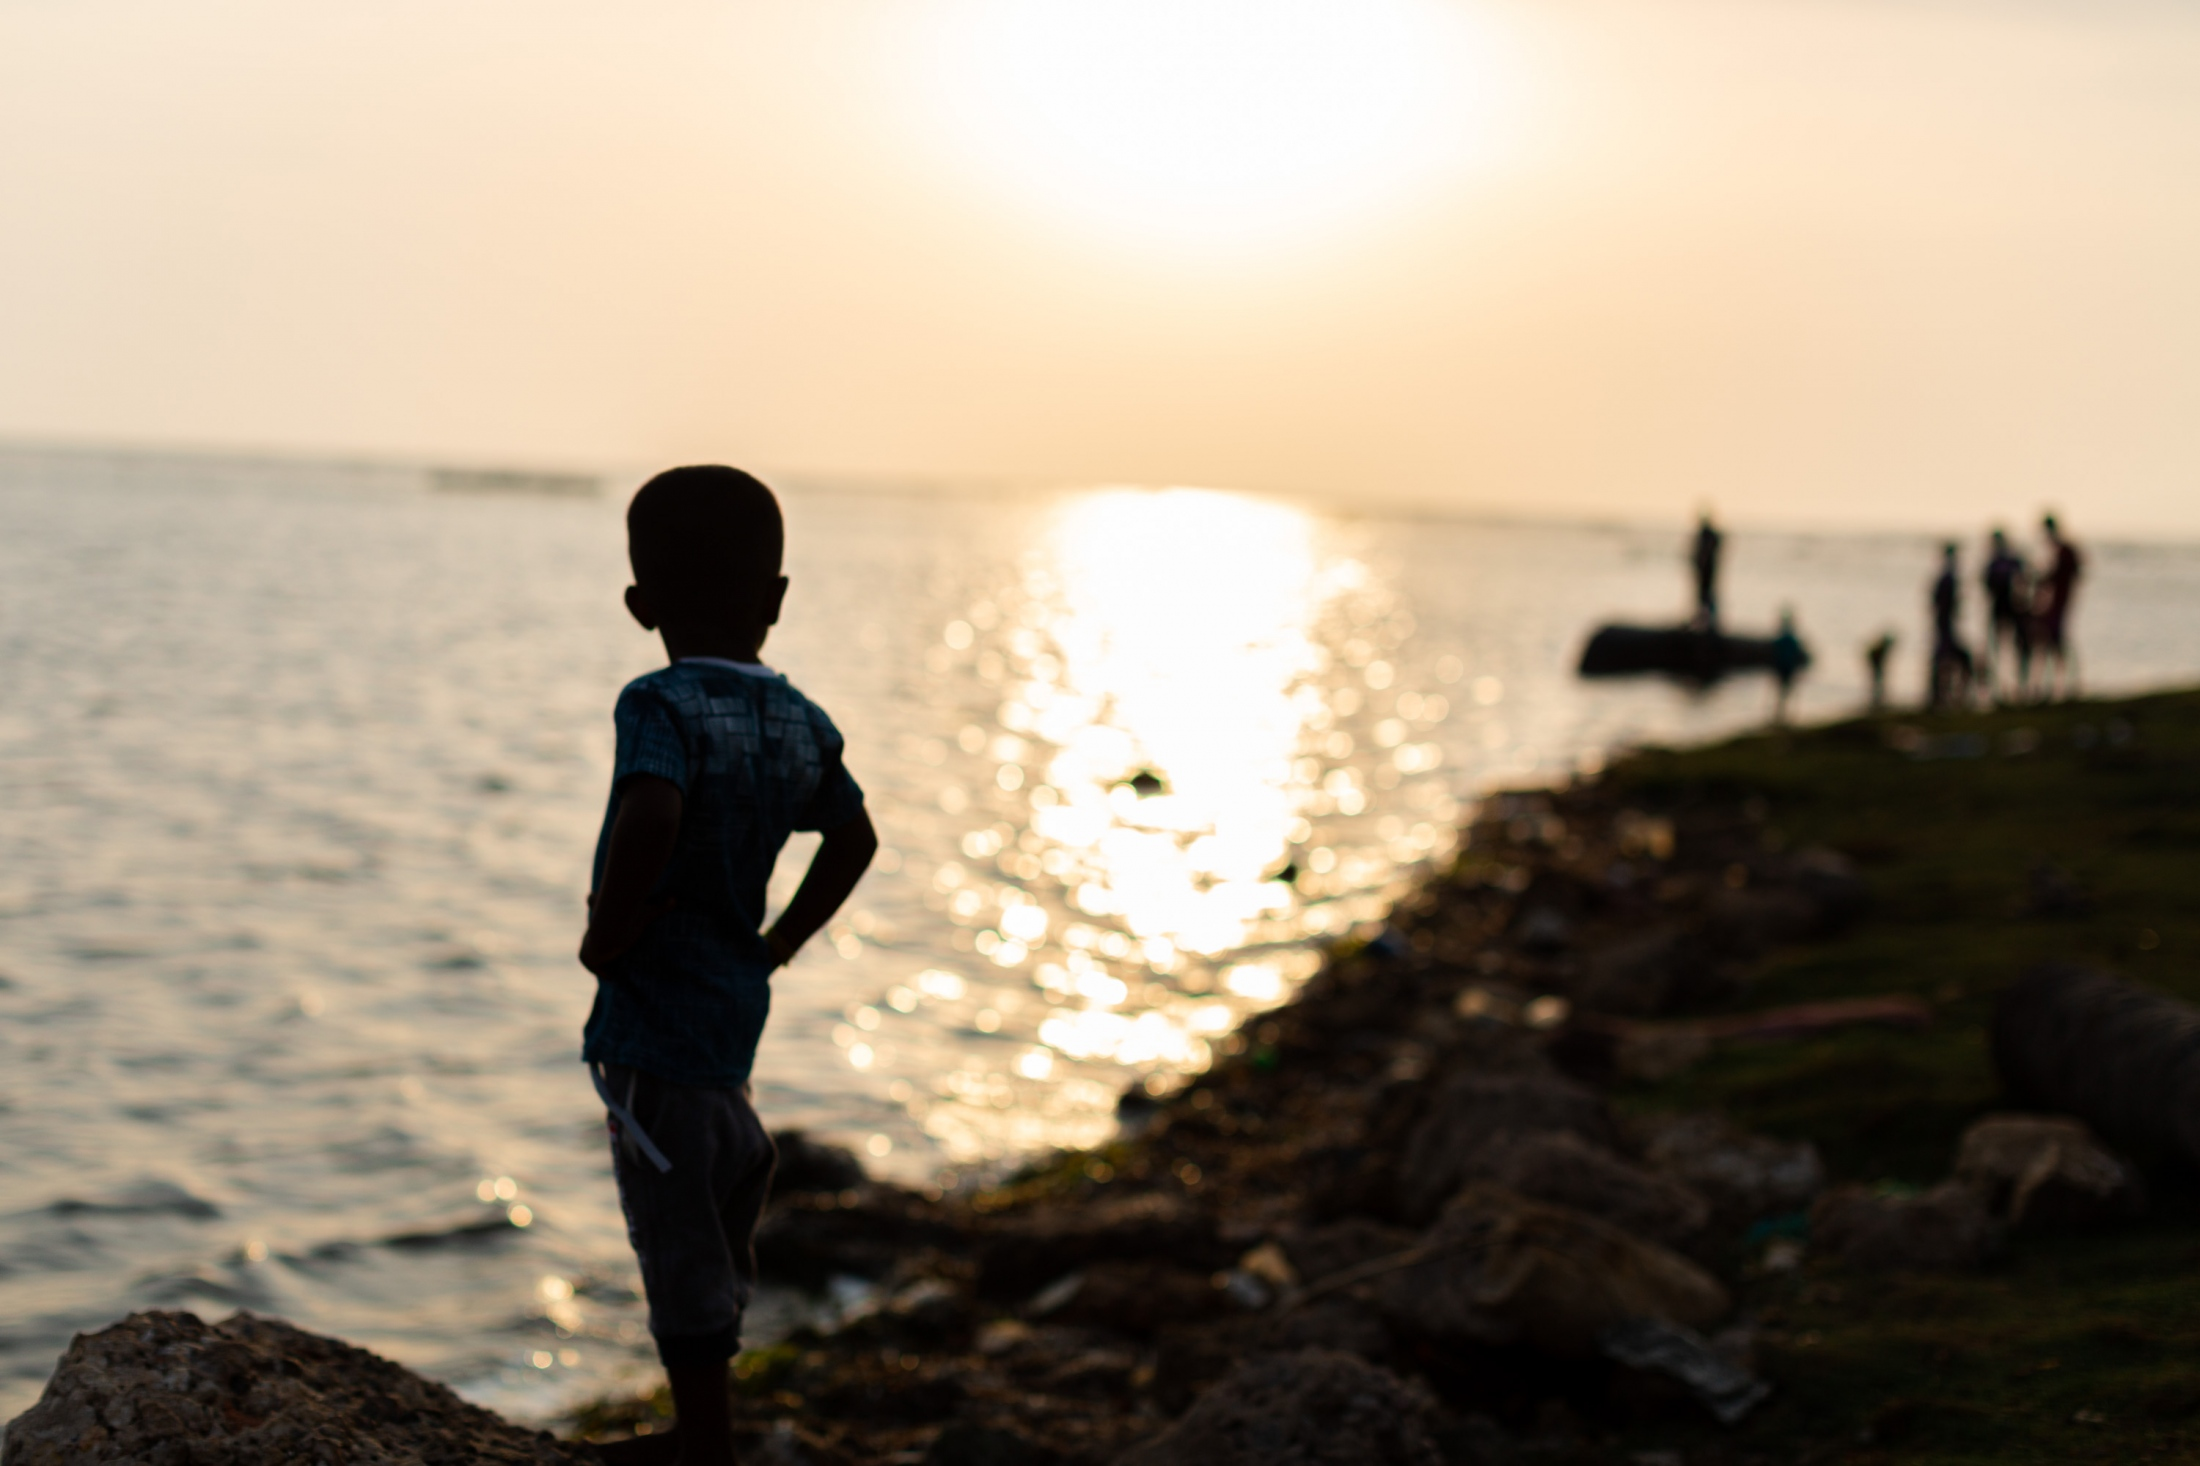 A young boy watches fisherman coming into the shore in Jaffna. (May, 2019)